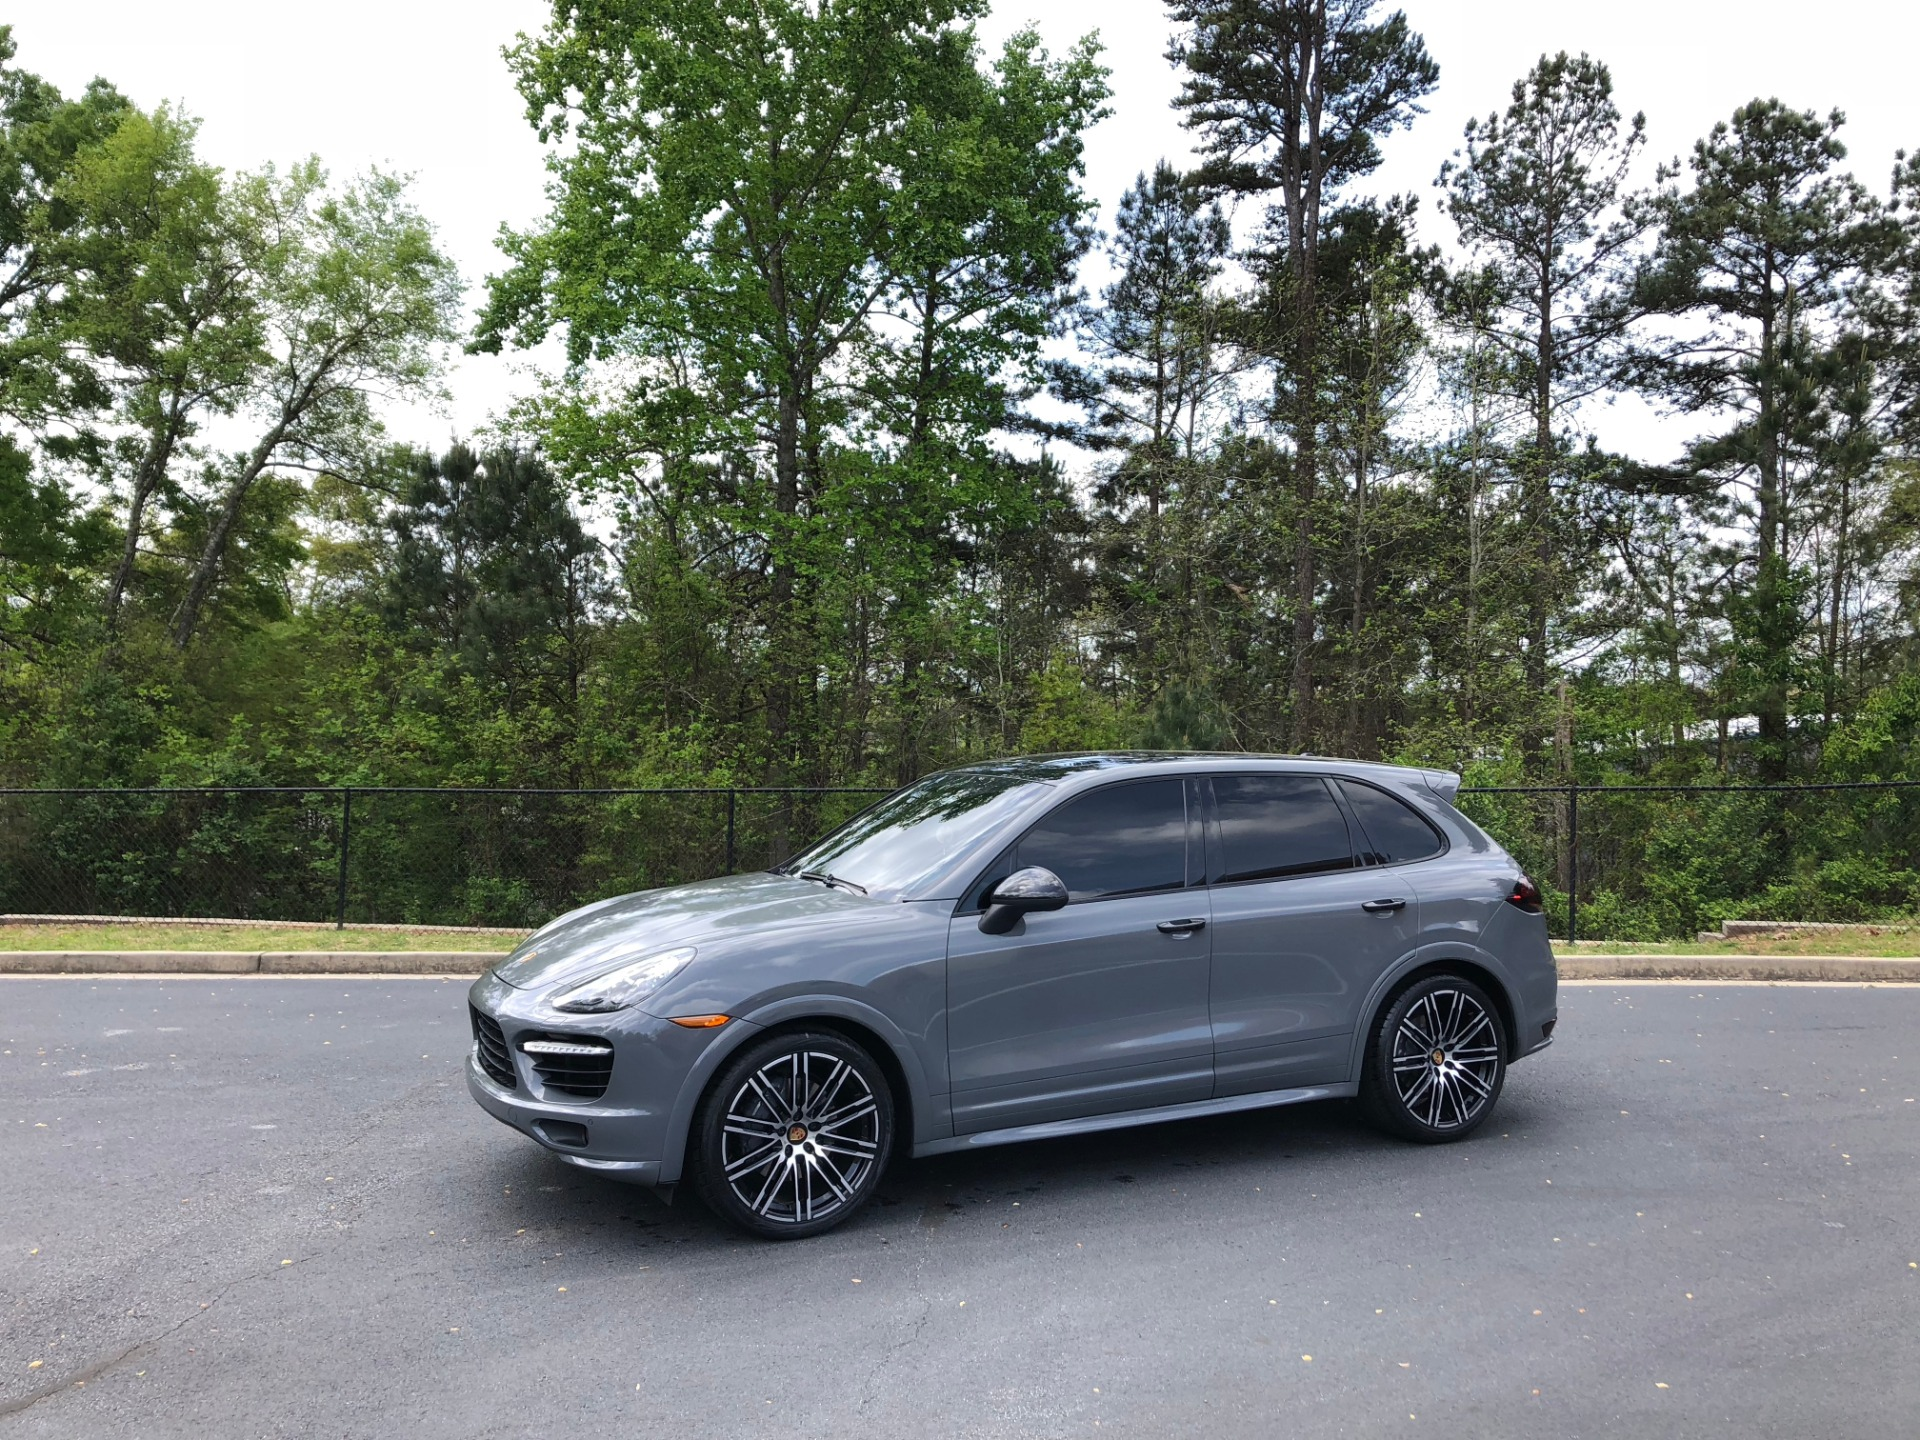 2015 Porsche Cayenne Trailer Wiring Electrical Diagrams Gts Rs Stock 765567 For Sale Near Peachtree Dodge Pickup